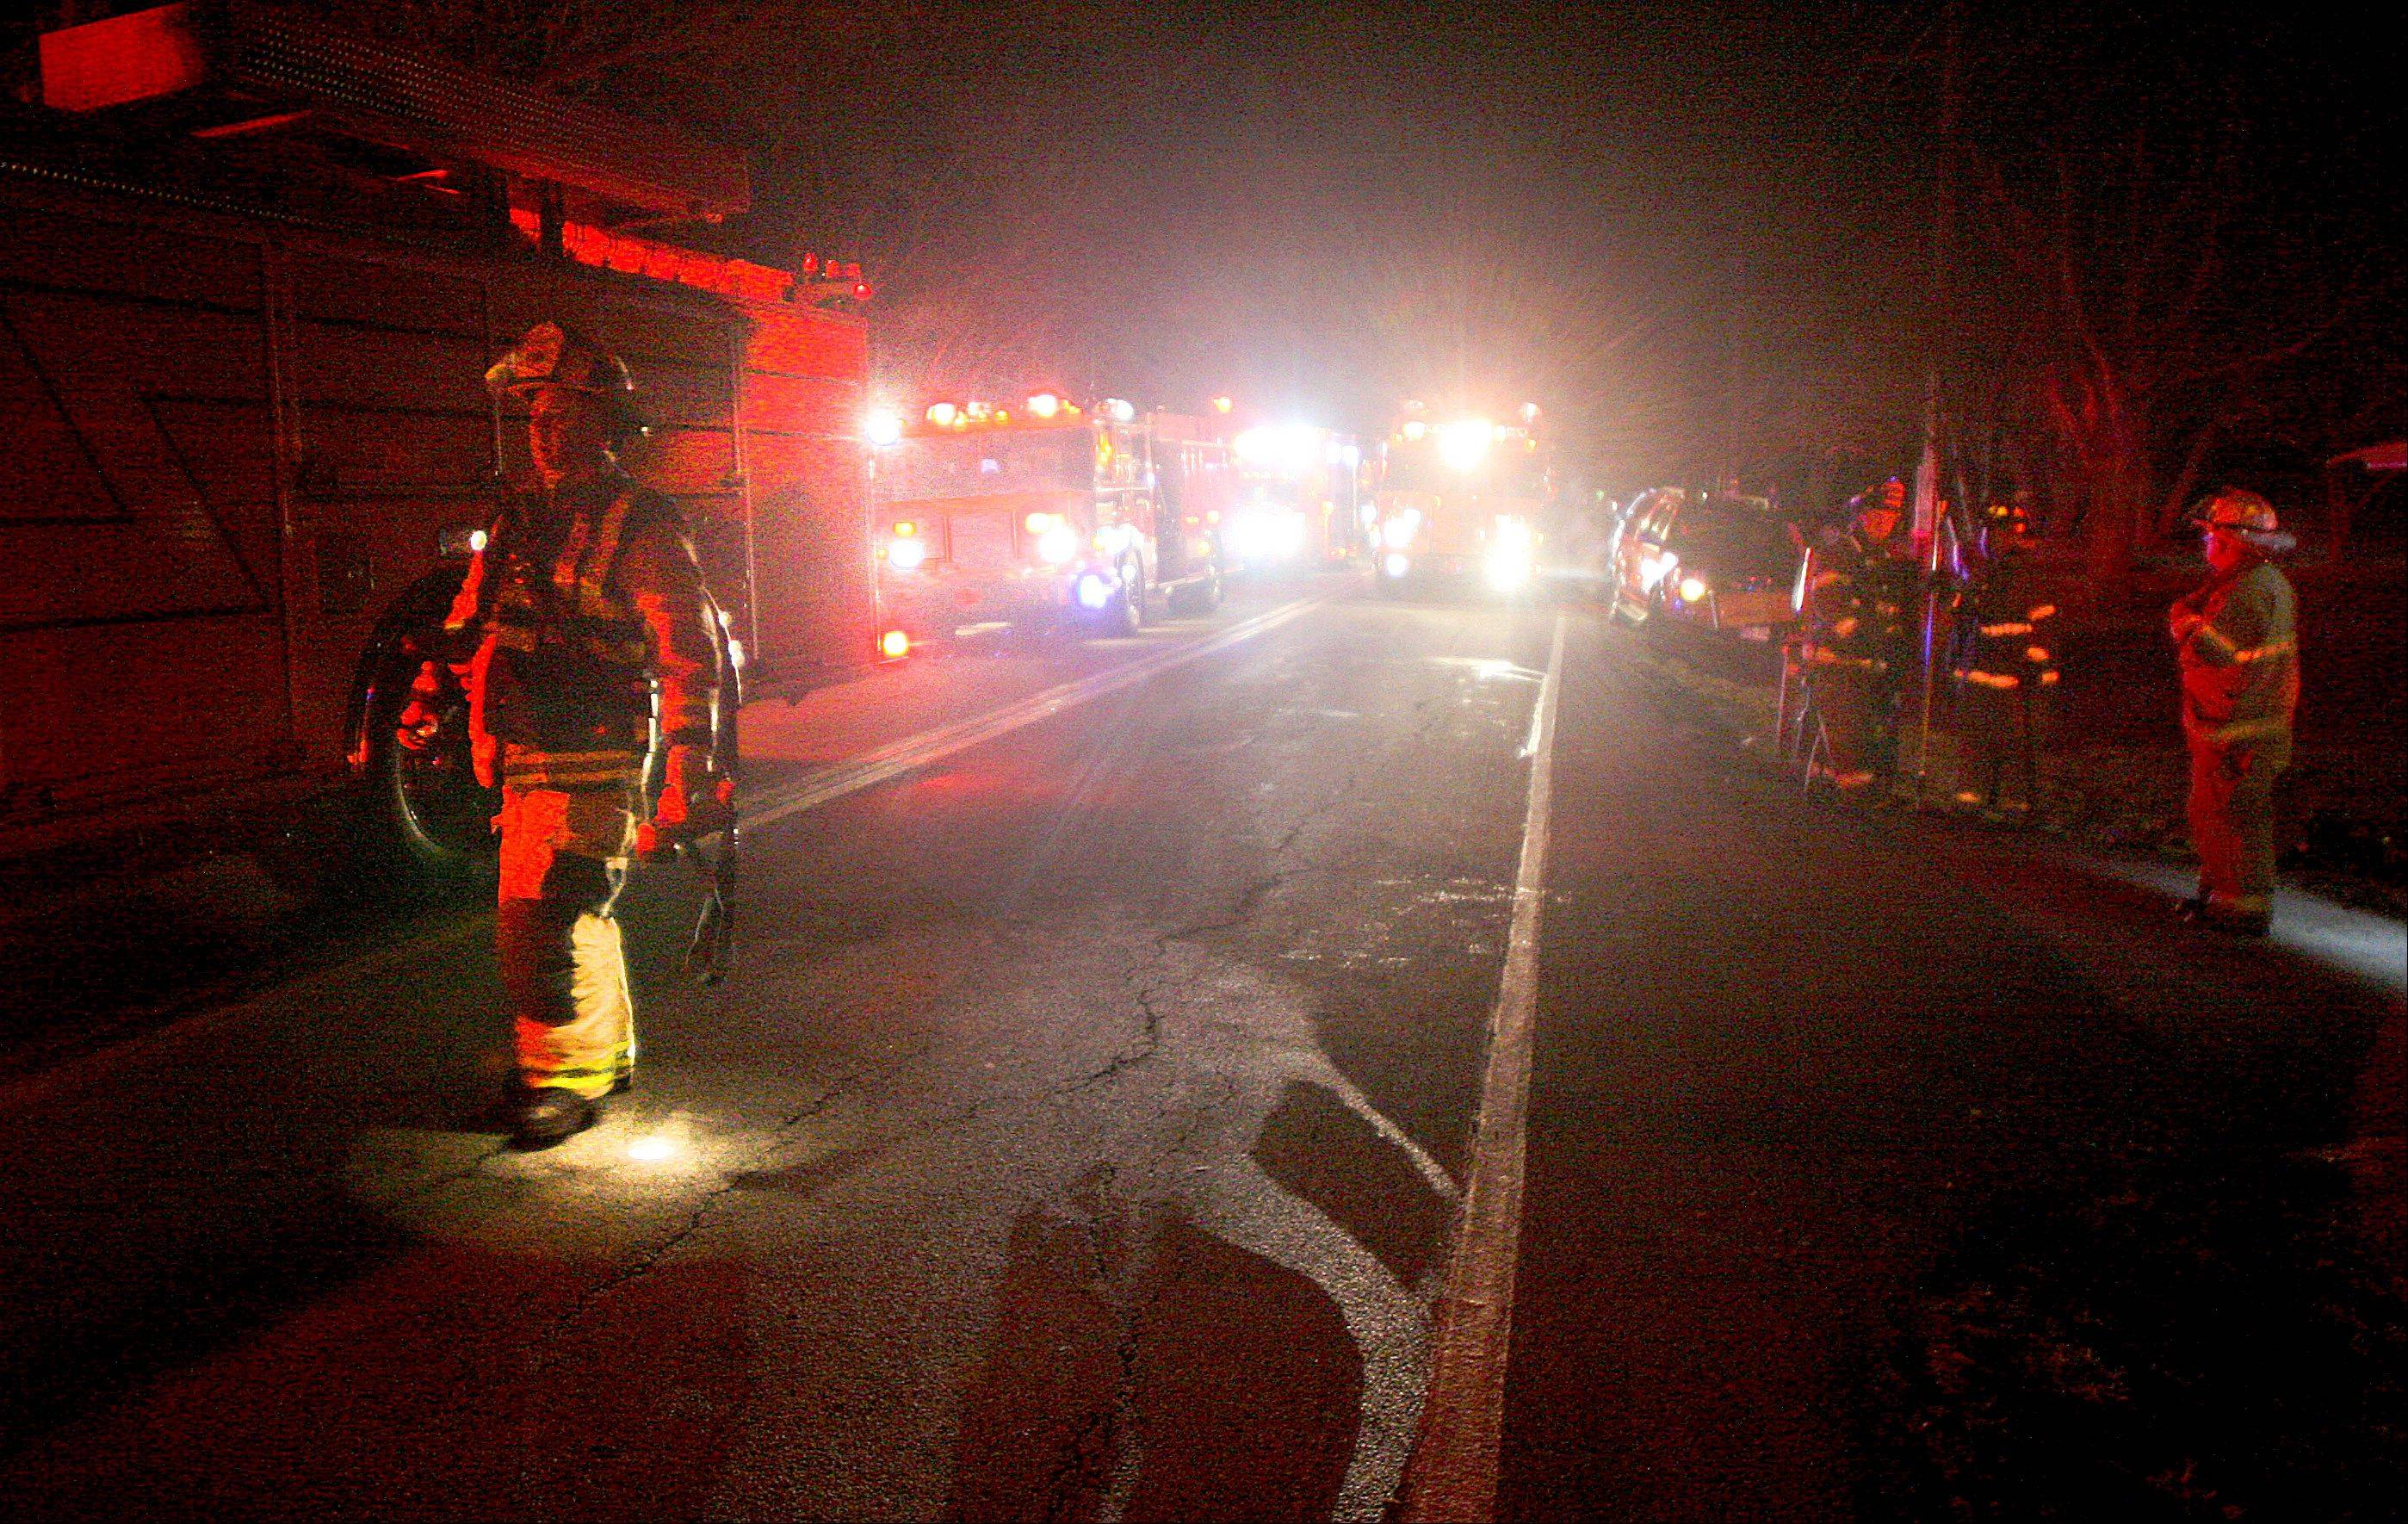 The house fire along Weber Drive was reported shortly after 7 p.m. Friday.